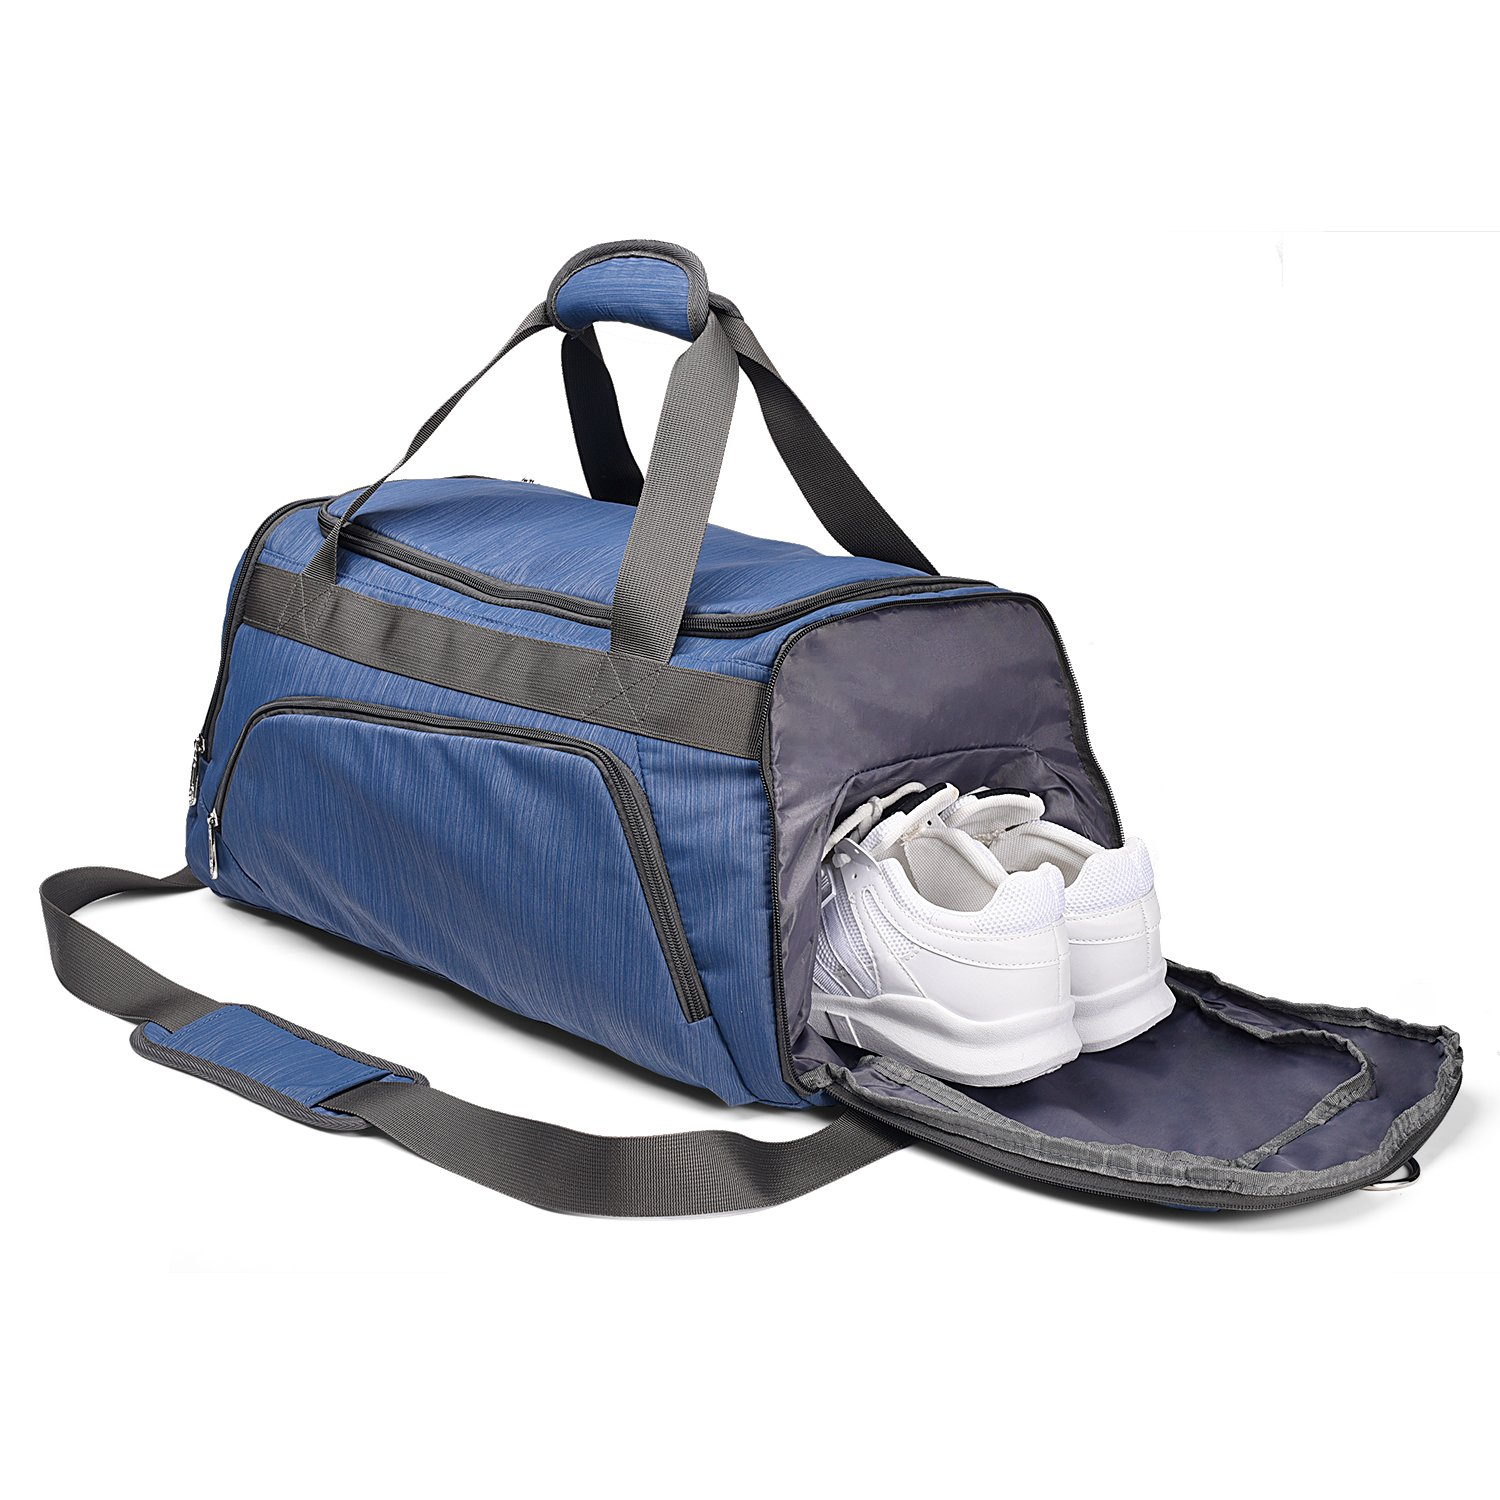 Sports Gym Bag with Shoes Compartment Travel Duffel Bag for Men and Women Blue Color